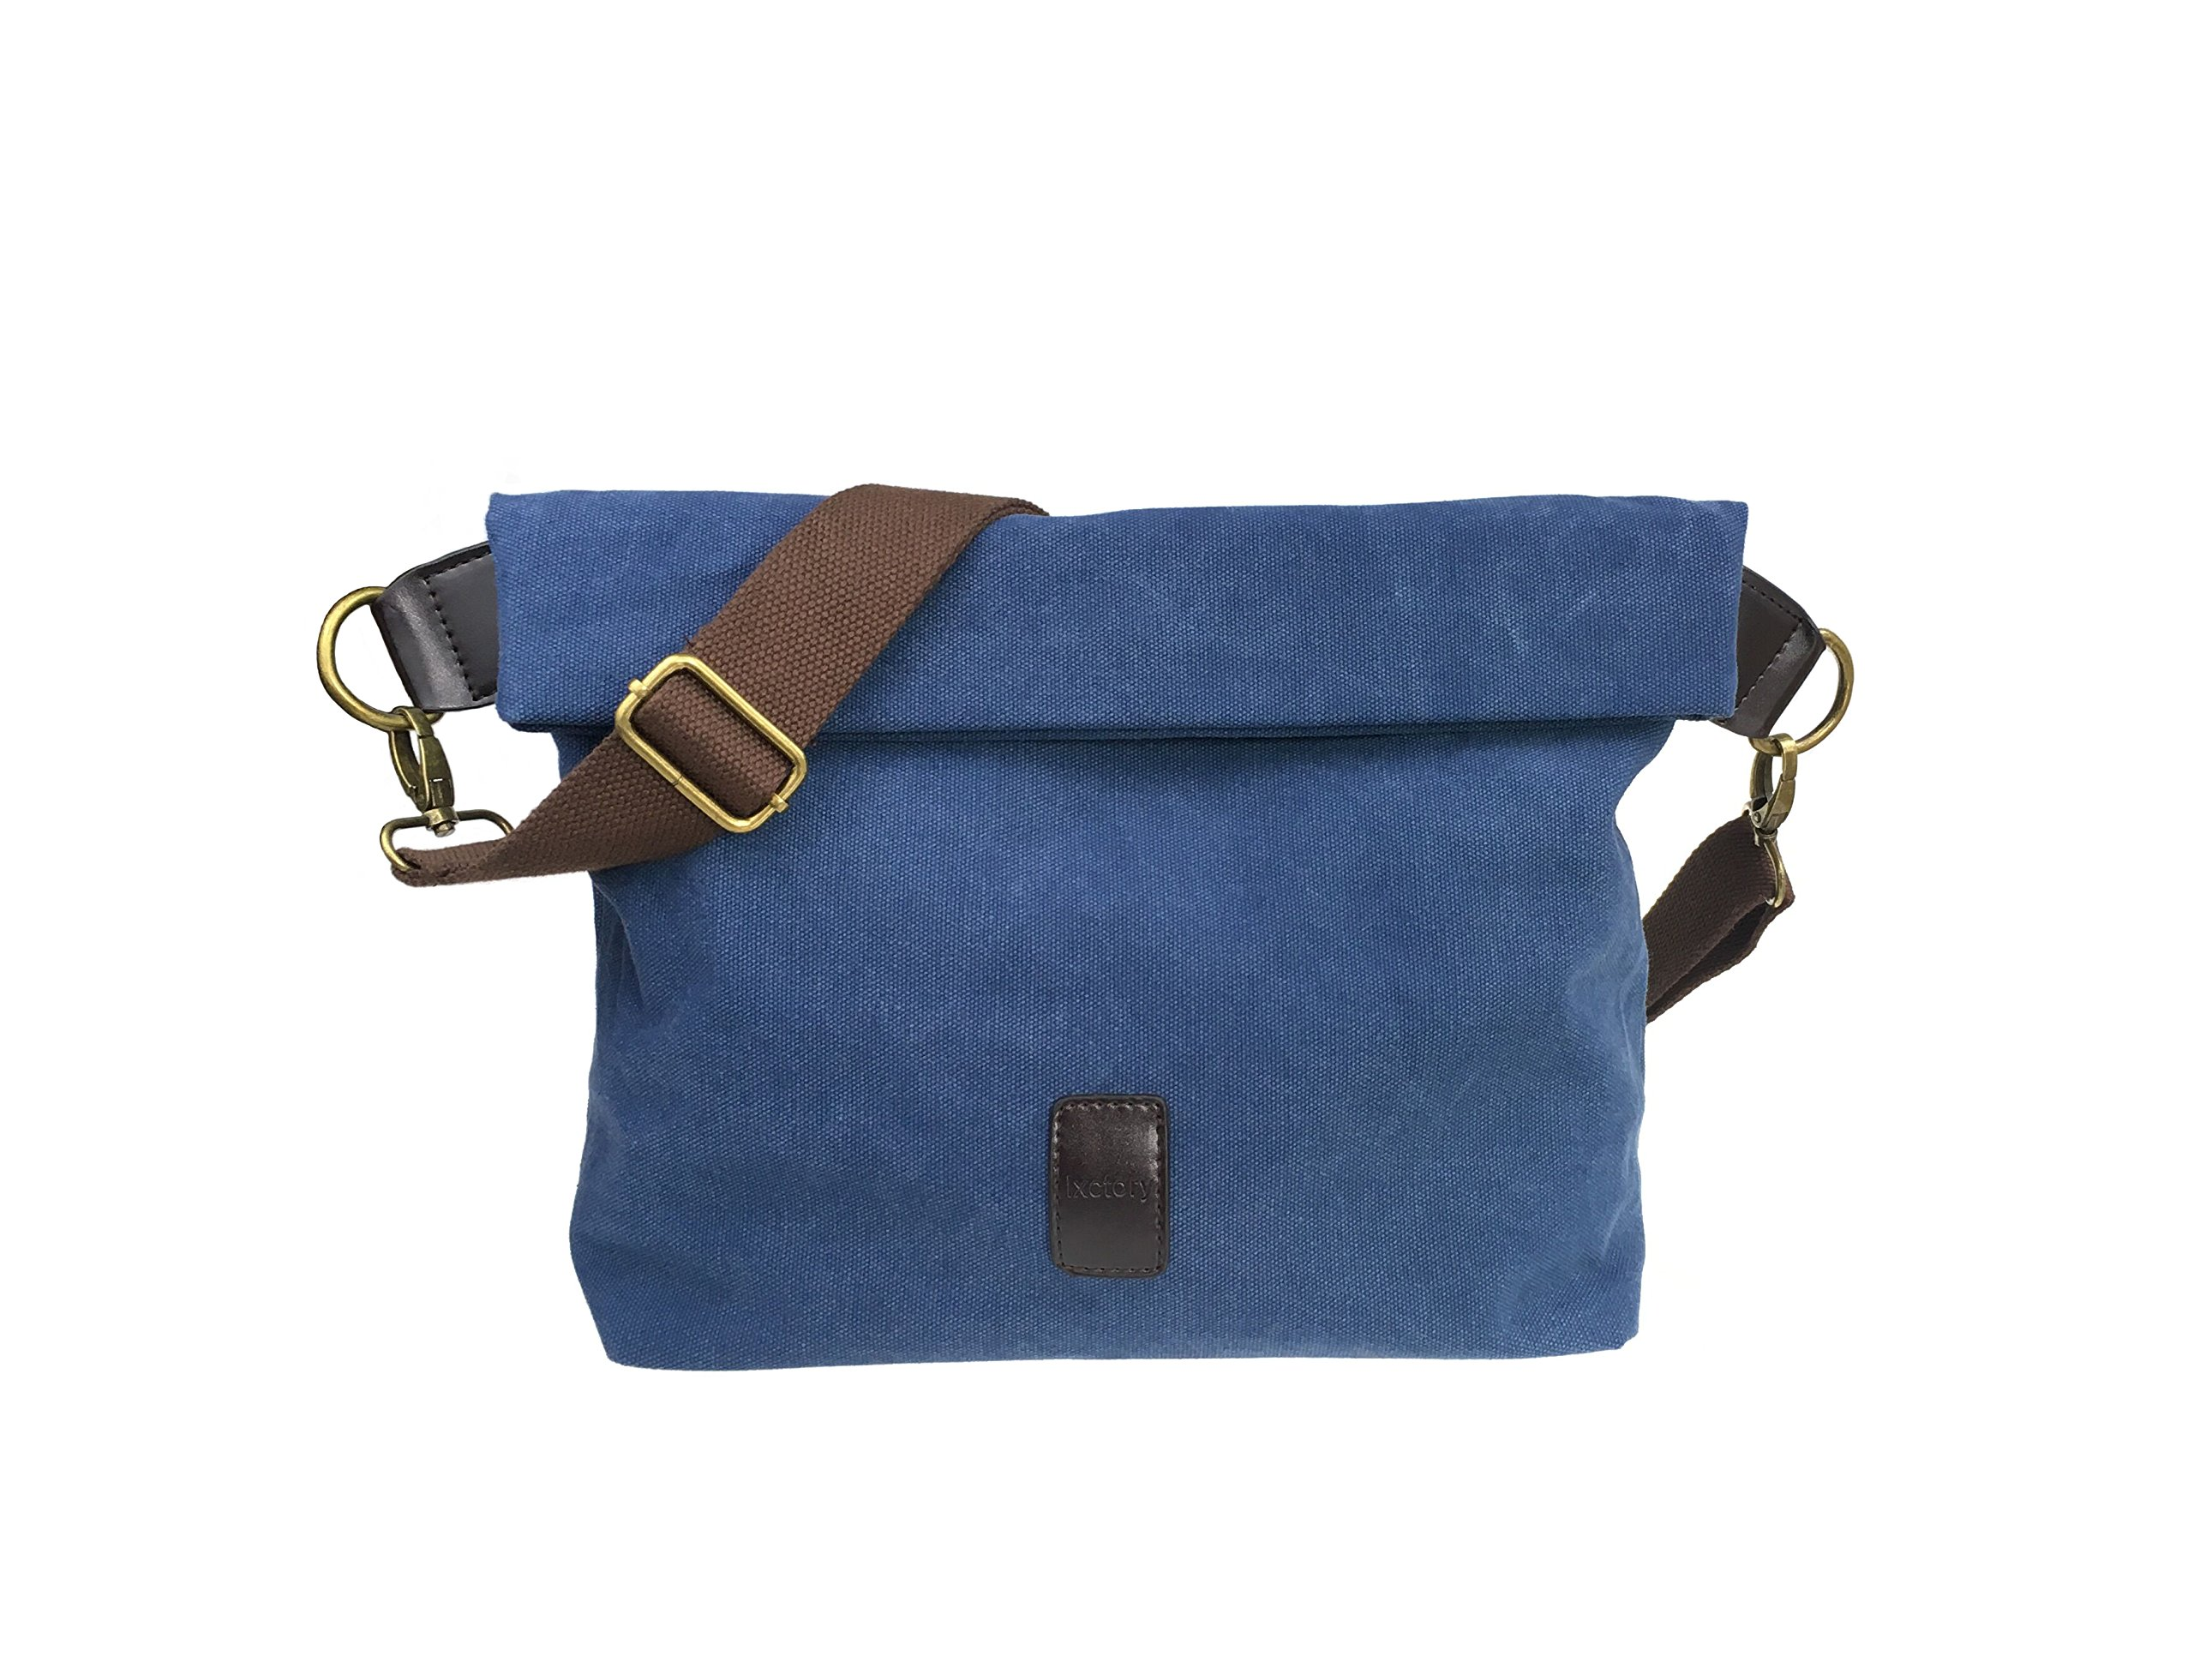 Canvas Shoulder Bag Classic Cross body Sling Bag Messenger Bag for Daily Using Etc Blue by lxctory (Image #1)